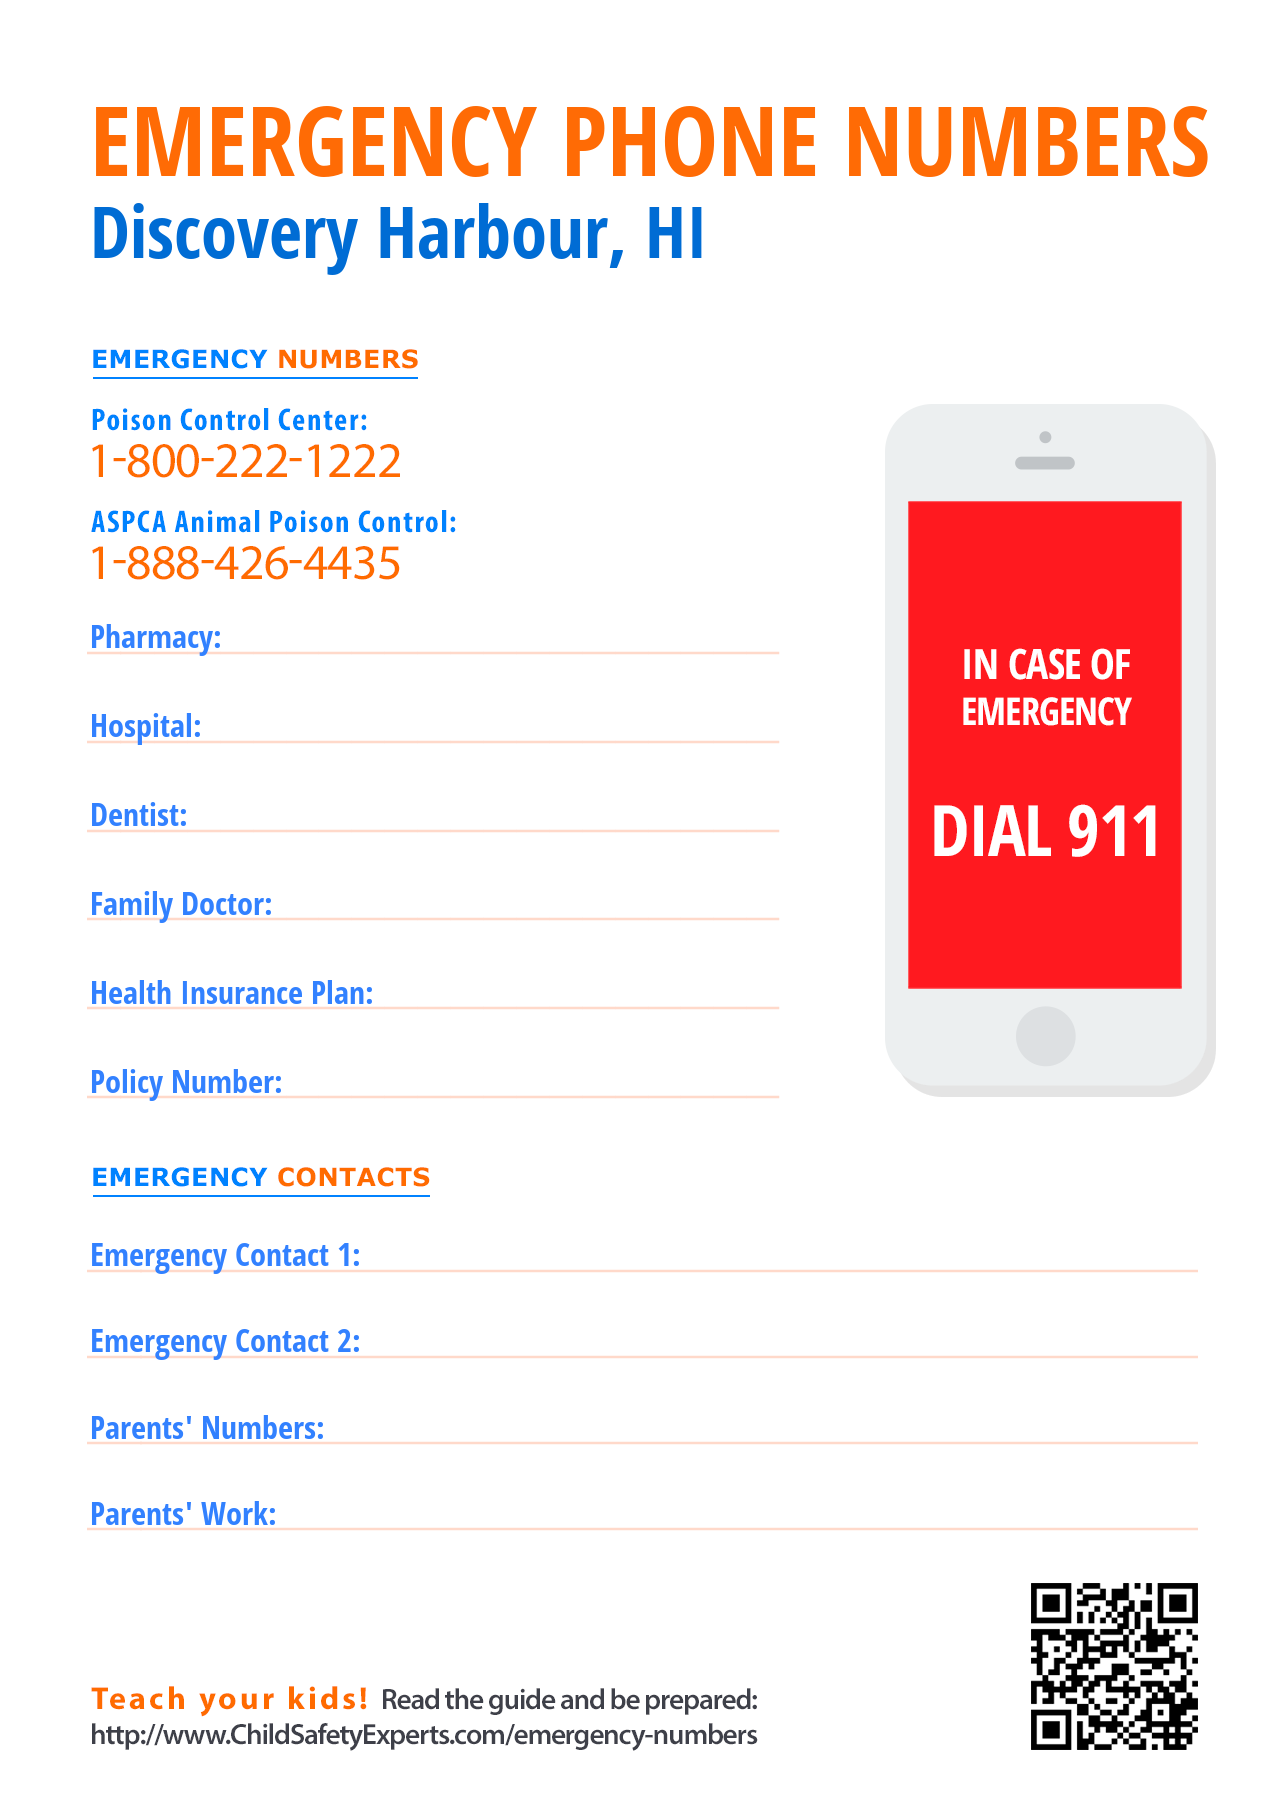 Important emergency phone numbers in Discovery Harbour, Hawaii